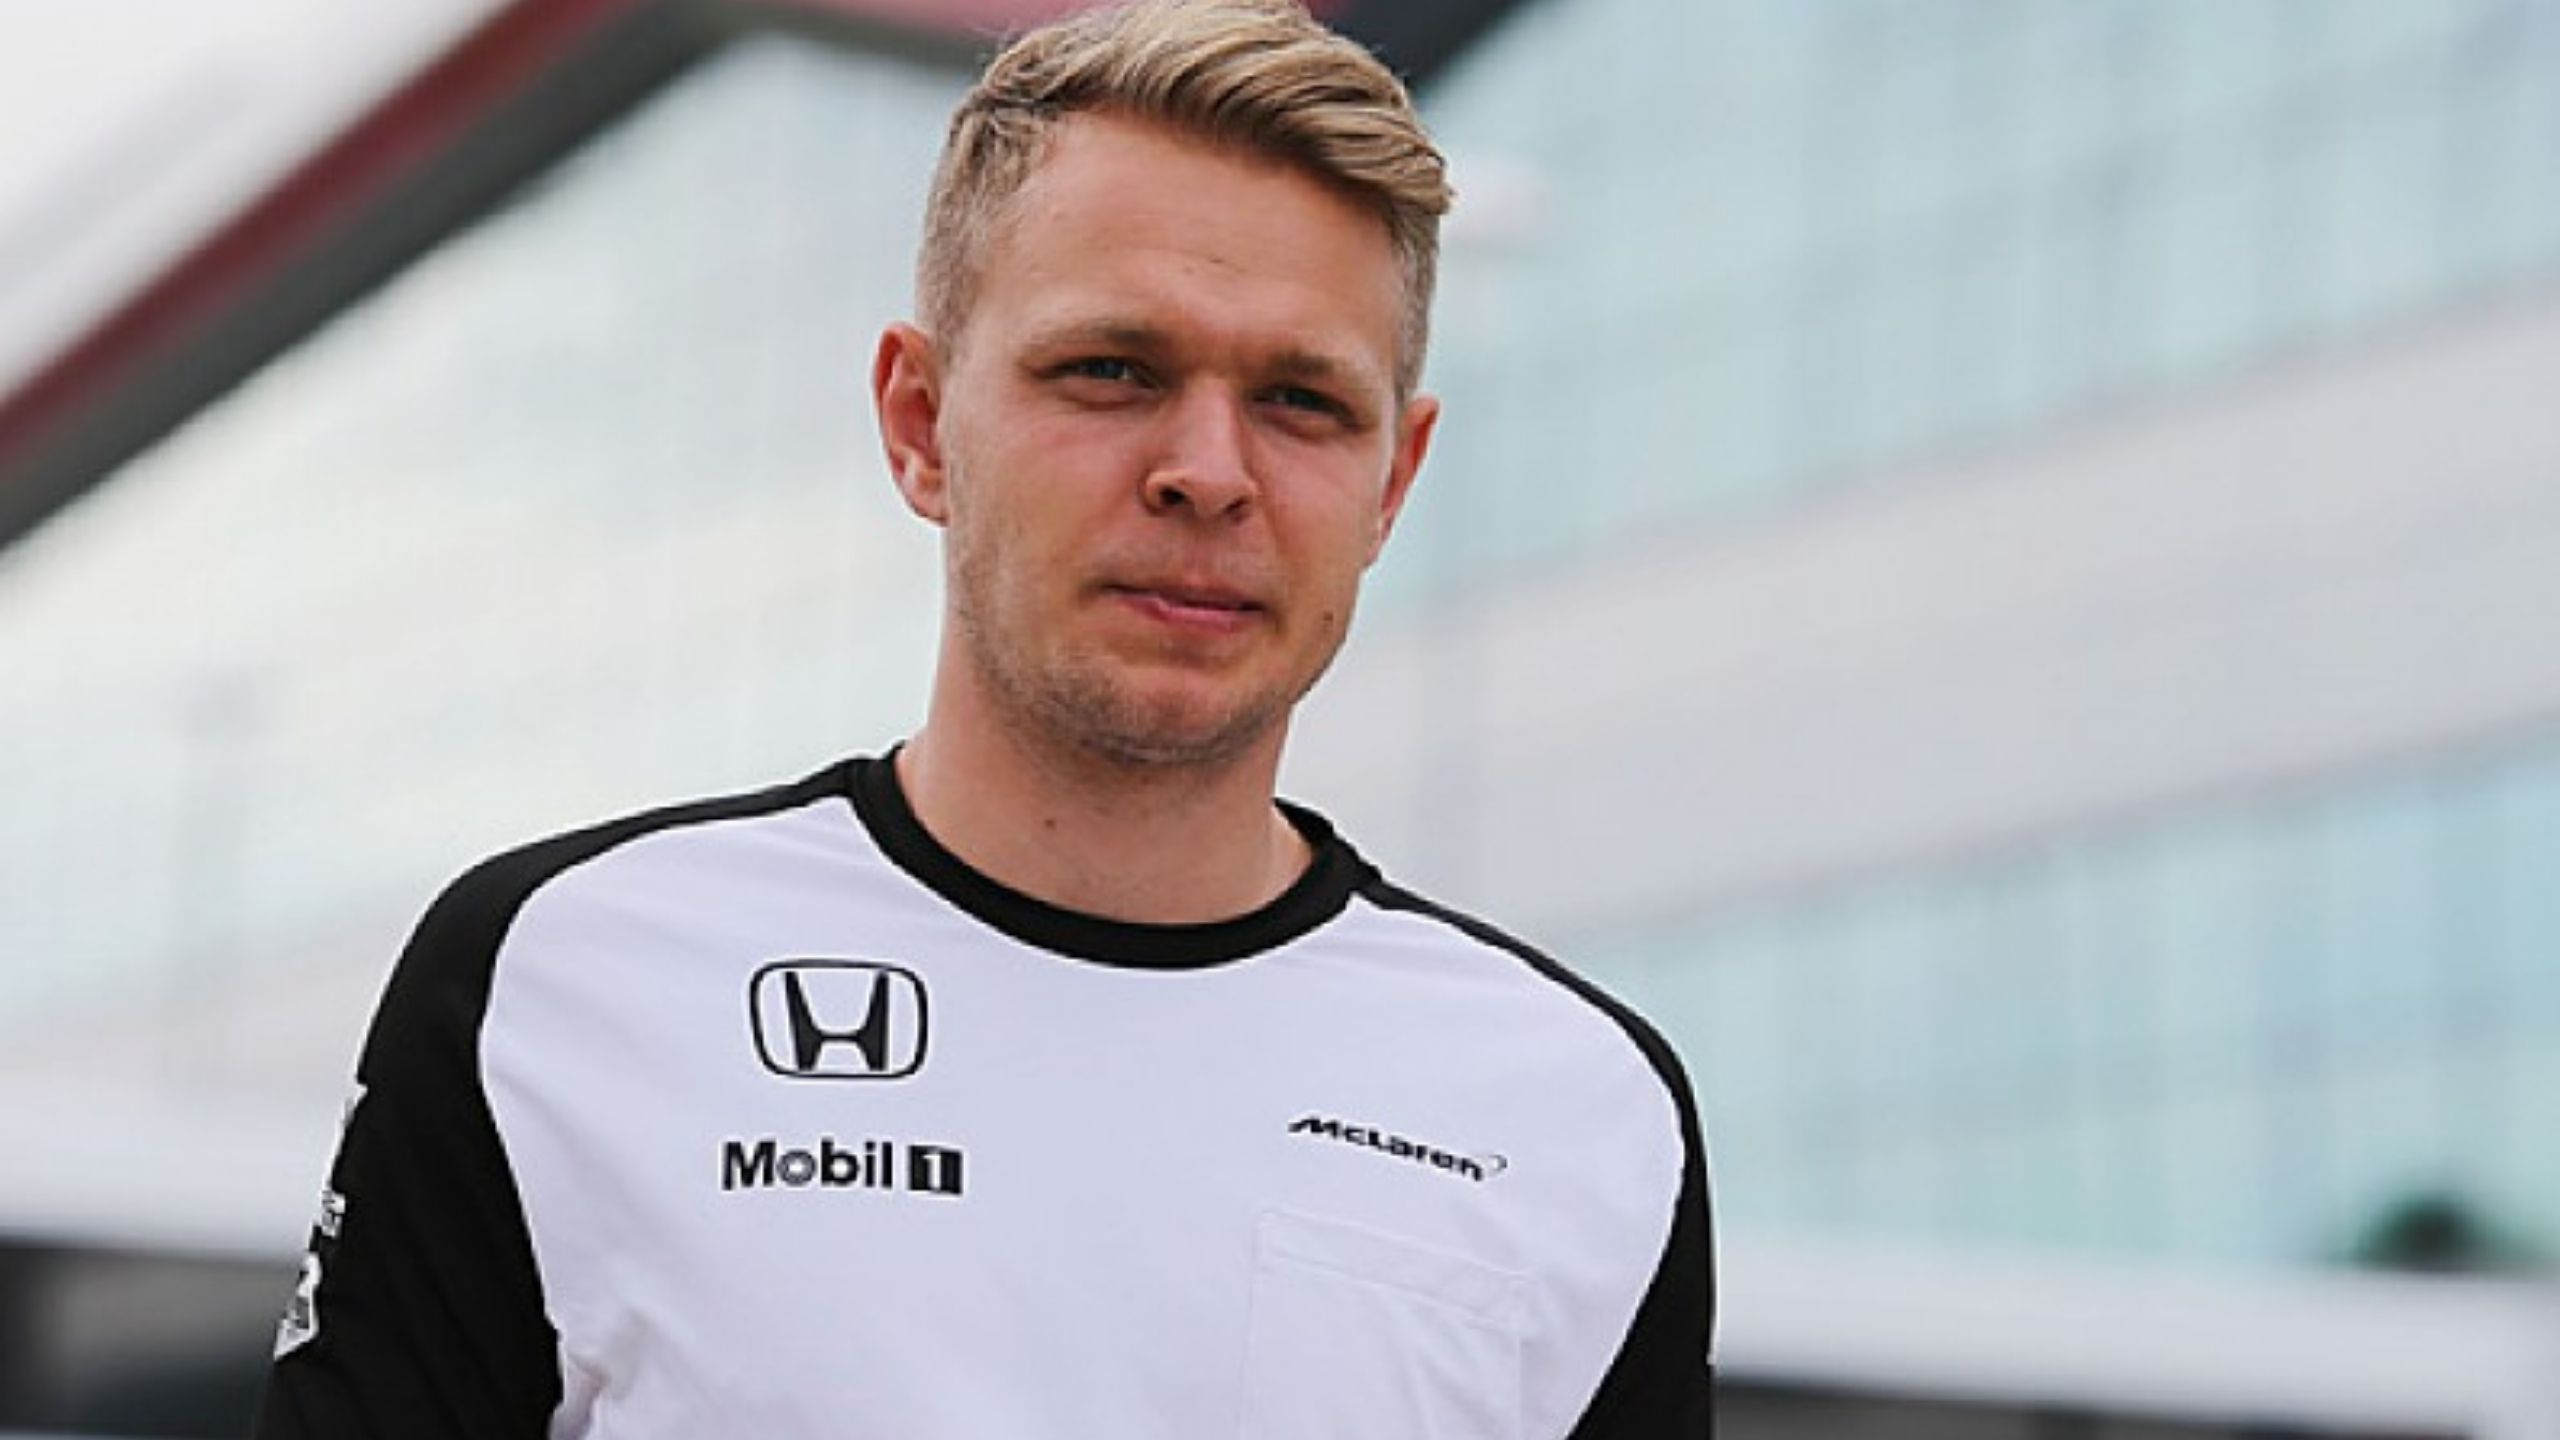 Haas F1 driver Kevin Magnussen sets his sights on sportscar racing with Chip Ganassi Racing's IMSA team